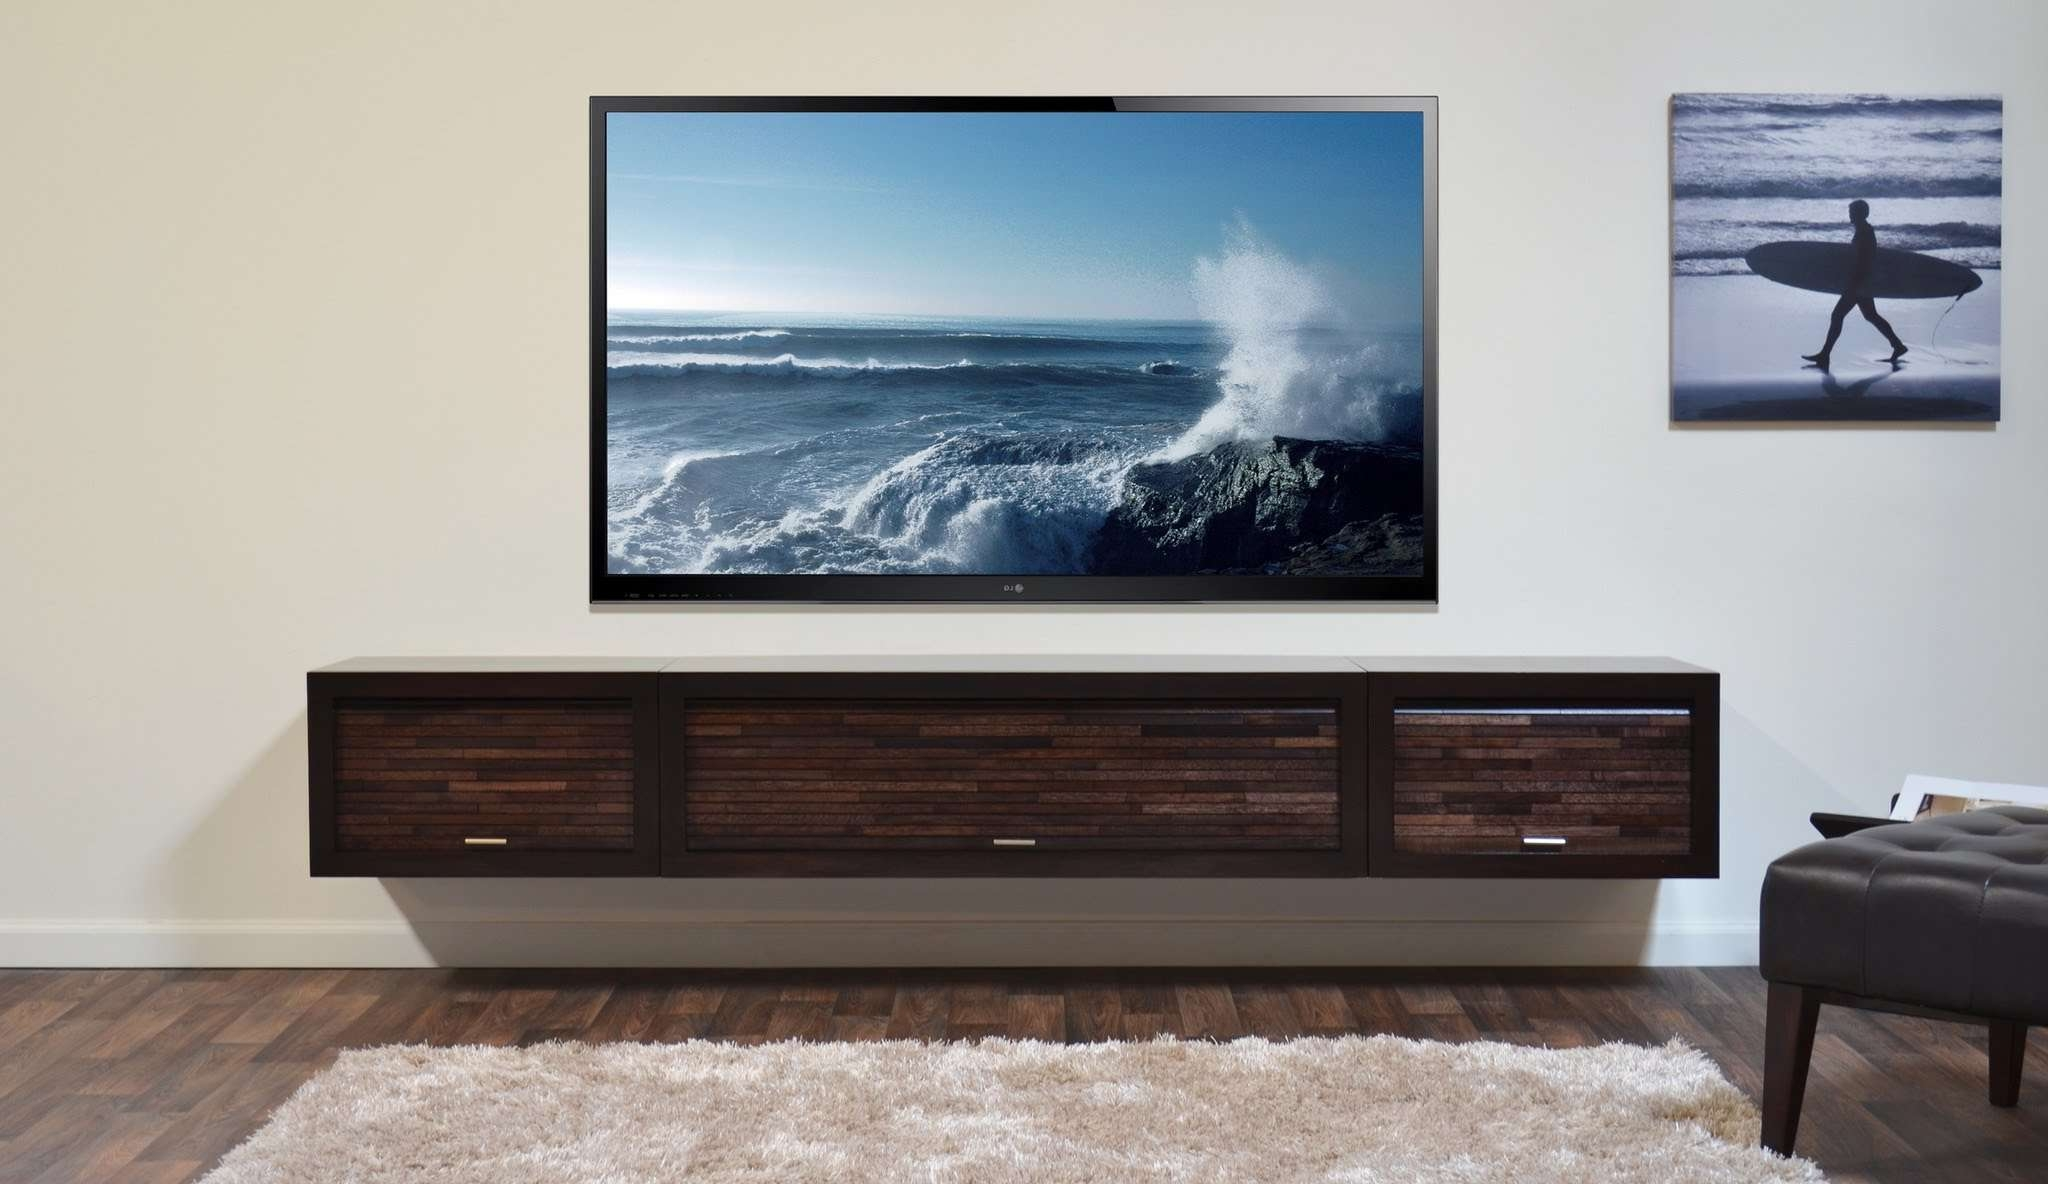 Diy Modern Tv Stand, Tv Stand Project On Pinterest – Youtube Regarding Modern Tv Cabinets (View 10 of 20)